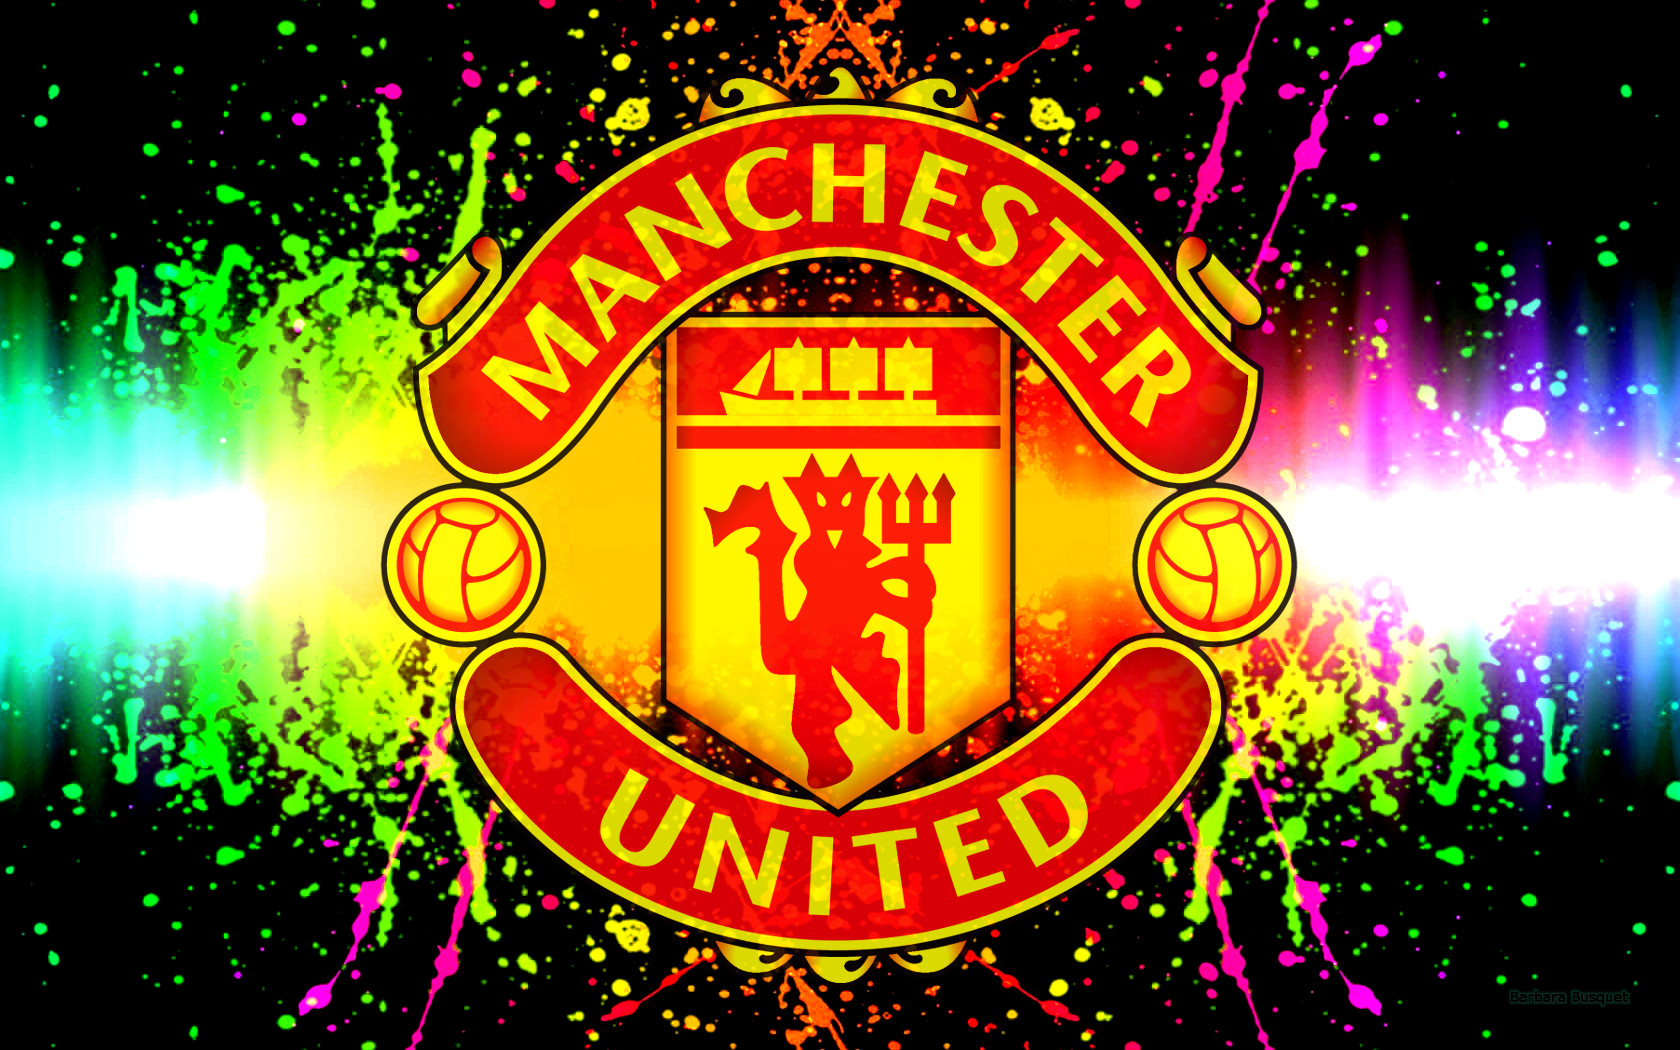 Manchester United Football Team Barbara S Hd Wallpapers